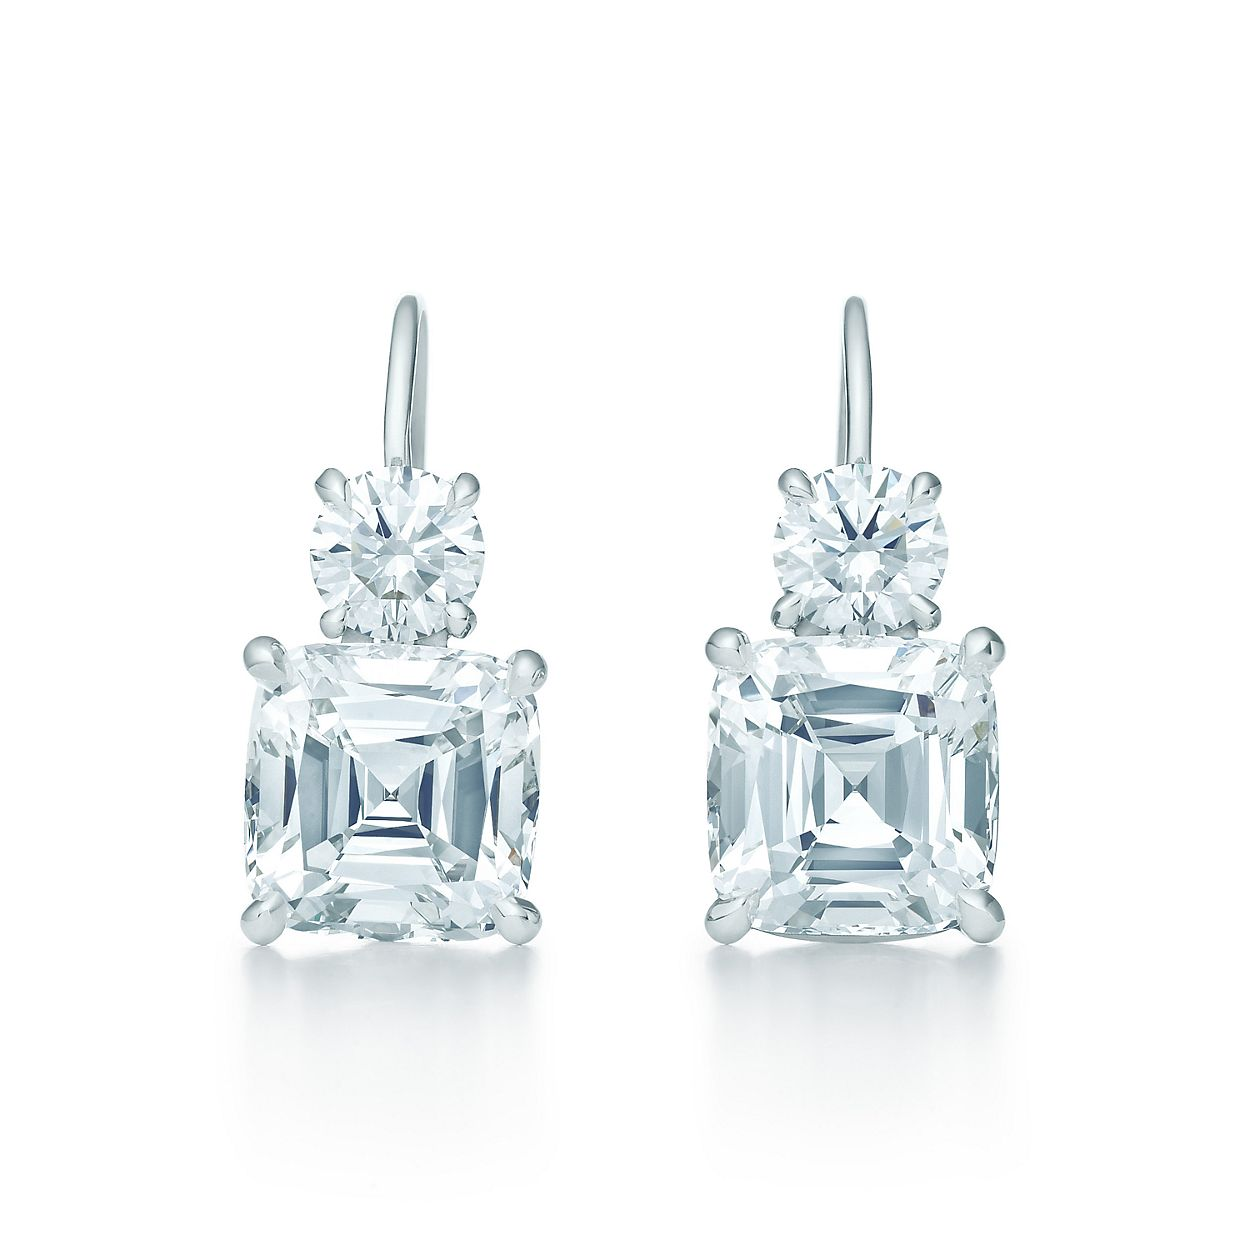 Tiffany Legacy Diamond Earrings